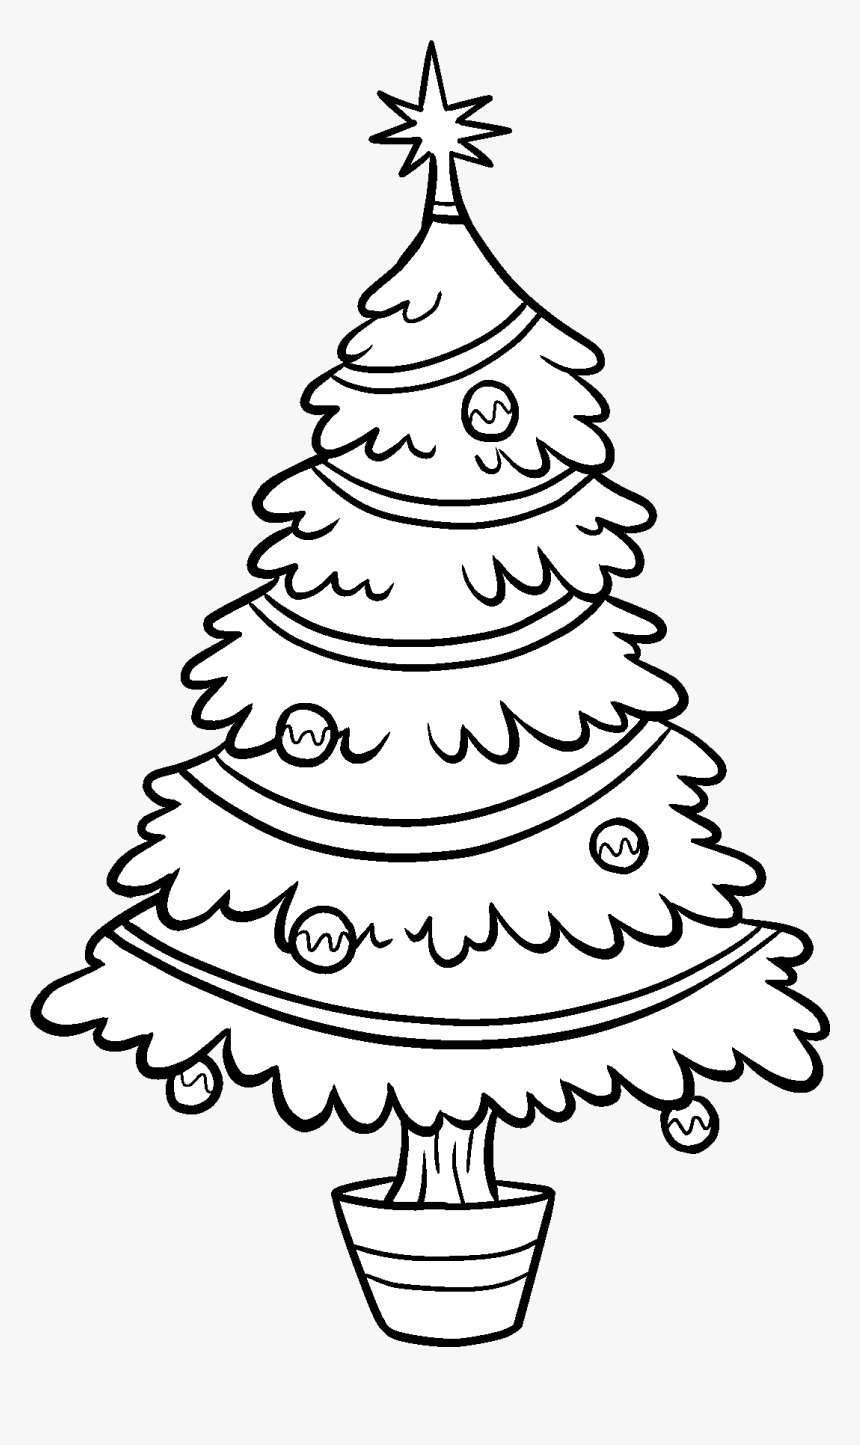 Printable Paper Christmas Tree - Transparent Christmas Tree Black And White Clipart, HD Png Download, Free Download